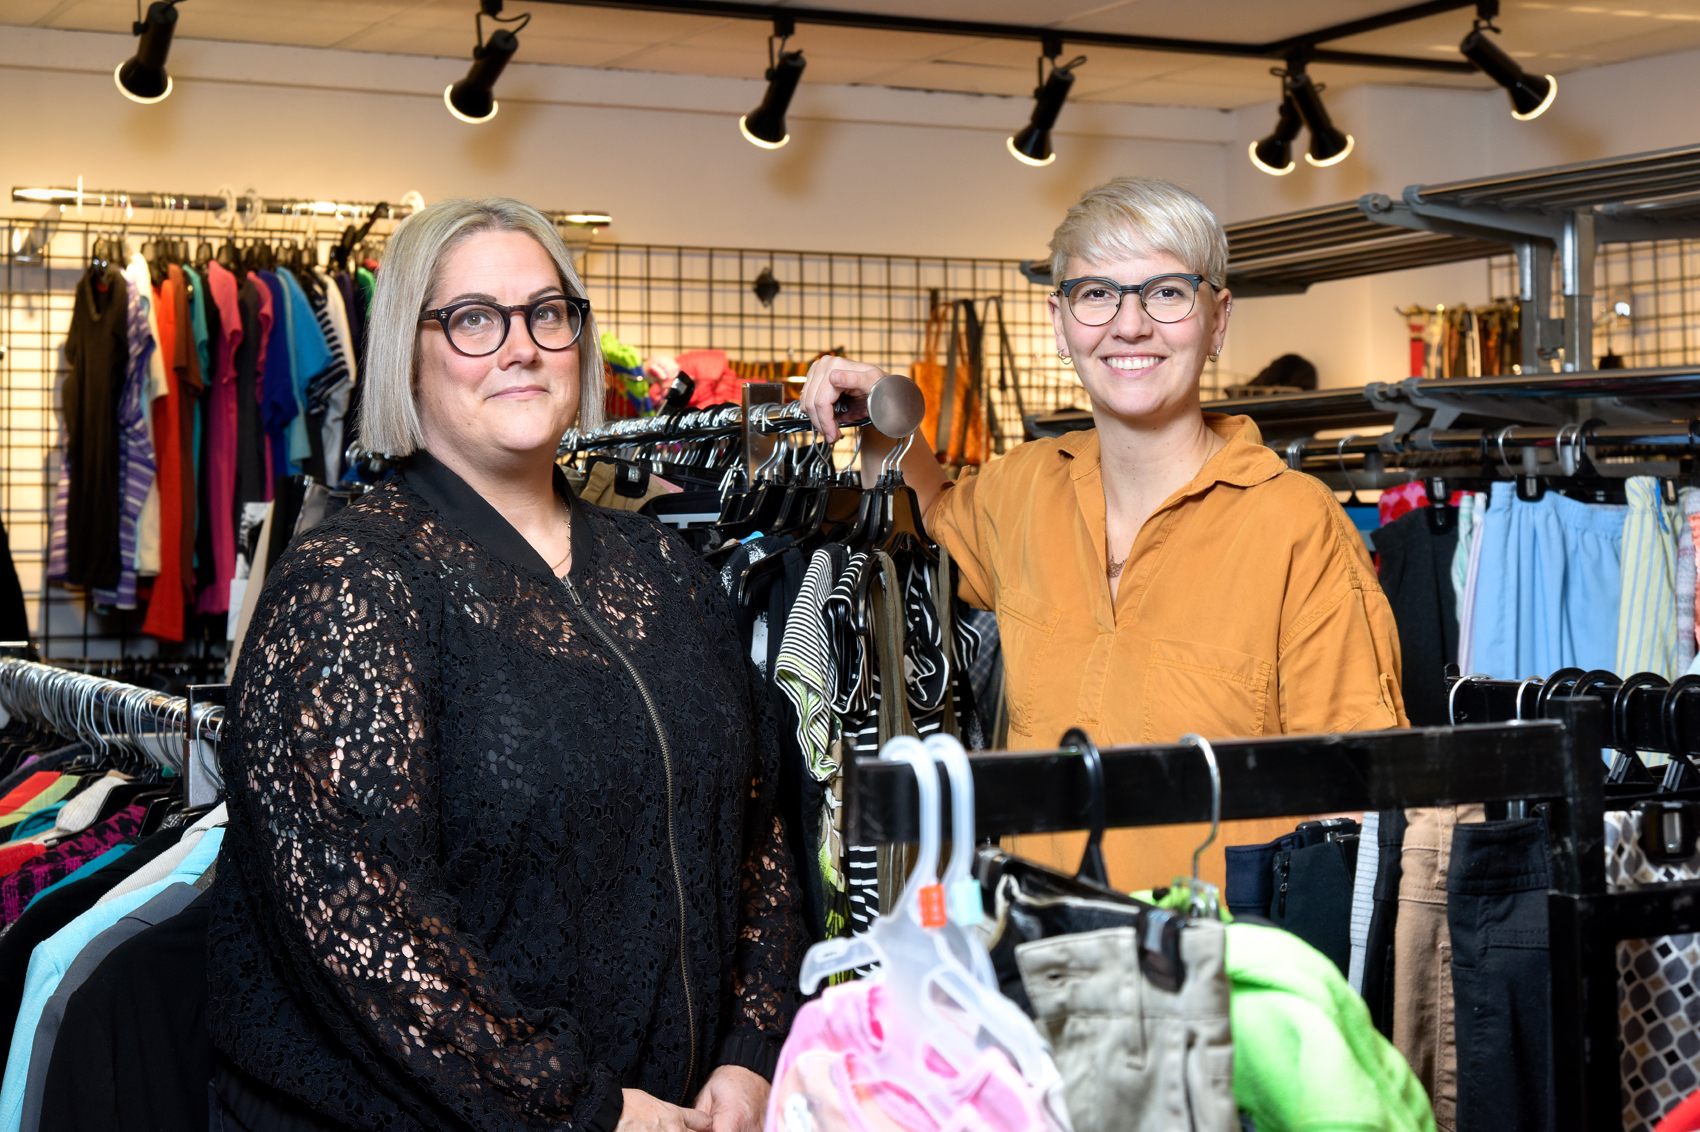 Tara Molson (right) is the senior director of community programs and Alexis Losie is the senior director of operations. They are seen here in YWCA Regina's Encore Market, a second-hand store for low cost toys, clothing, books, and household goods. Photo by Trevor Hopkin